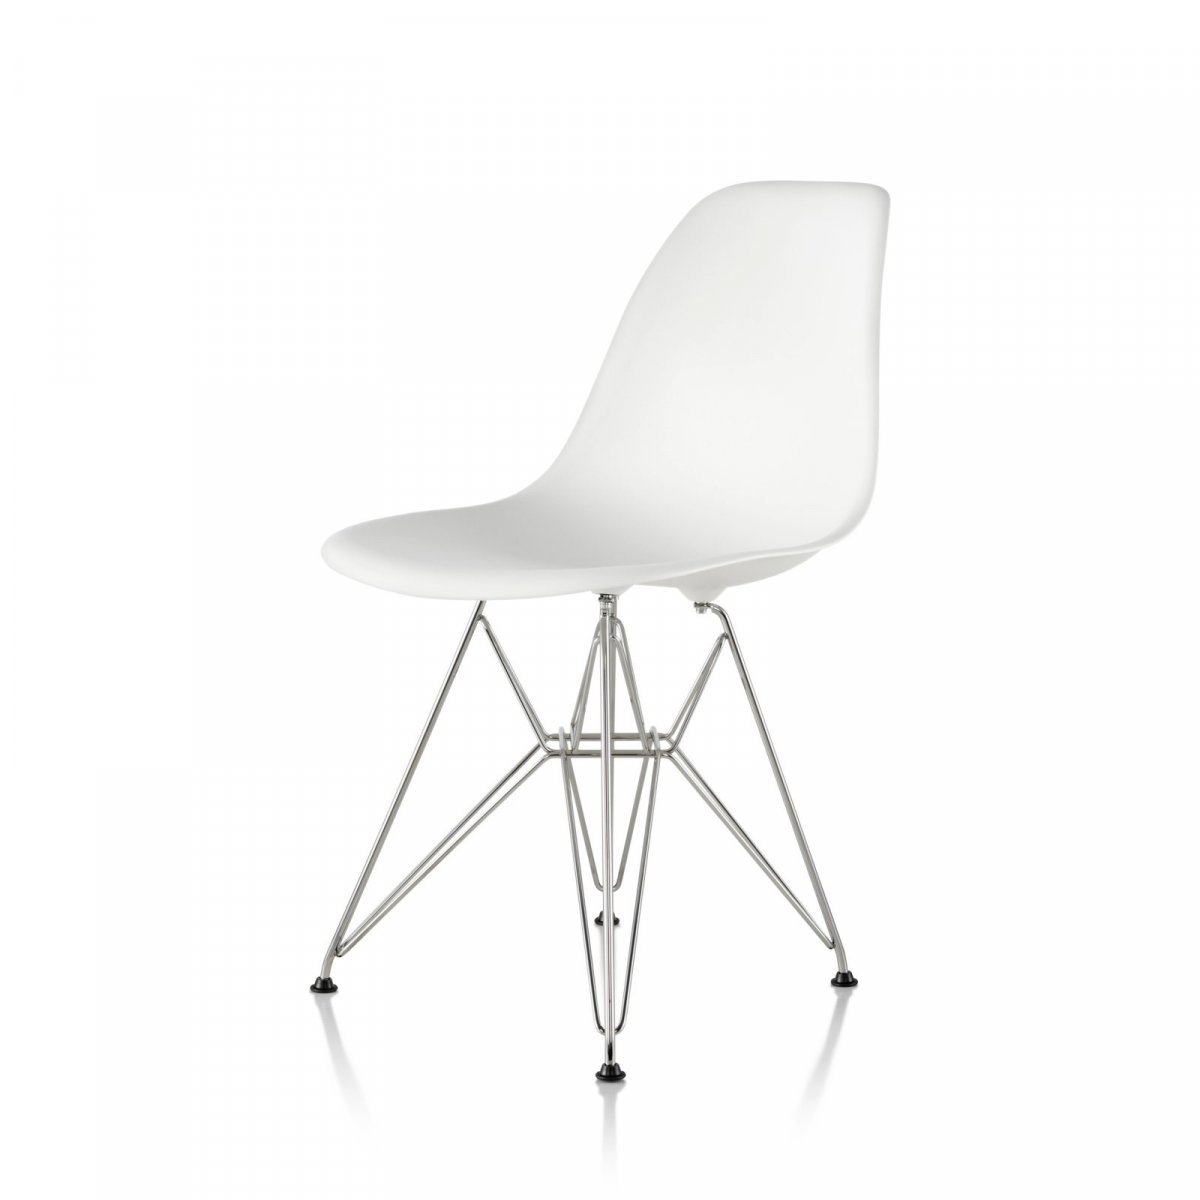 Eames Molded Plastic Side Chair Wire Base, white seat and back, trivalent chrome base.